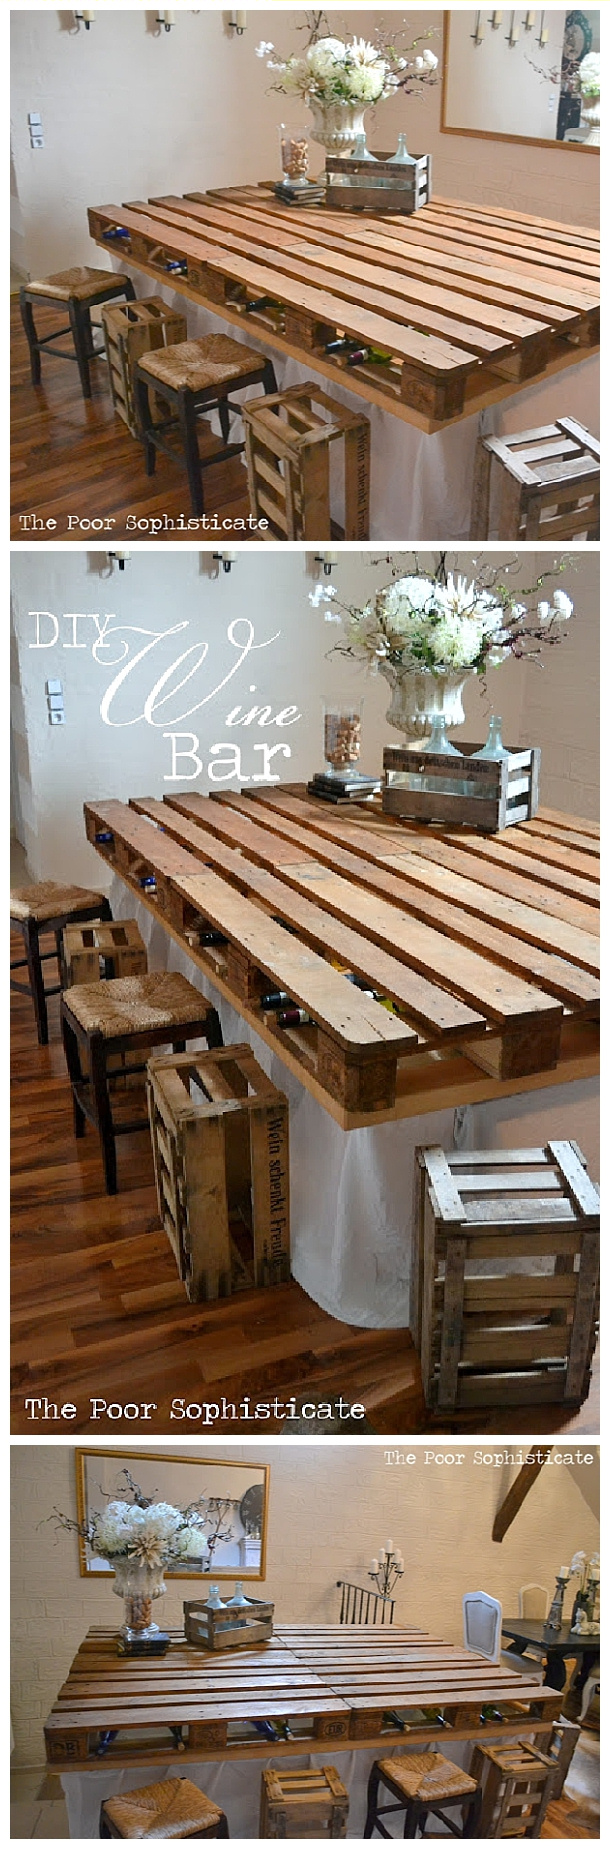 DIY Pallet Projects - Do it Yourself Completely FREE Pallet Wine Bar Table Top Woodworking Upcycle Tutorial via The Poor Sophisticate #easypalletprojects #beginnerwoodworking #easywoodworkingtutorials #woodworkingtutorials #DIYprojects #easyDIYprojects #diyhomedecor #diyfurniture